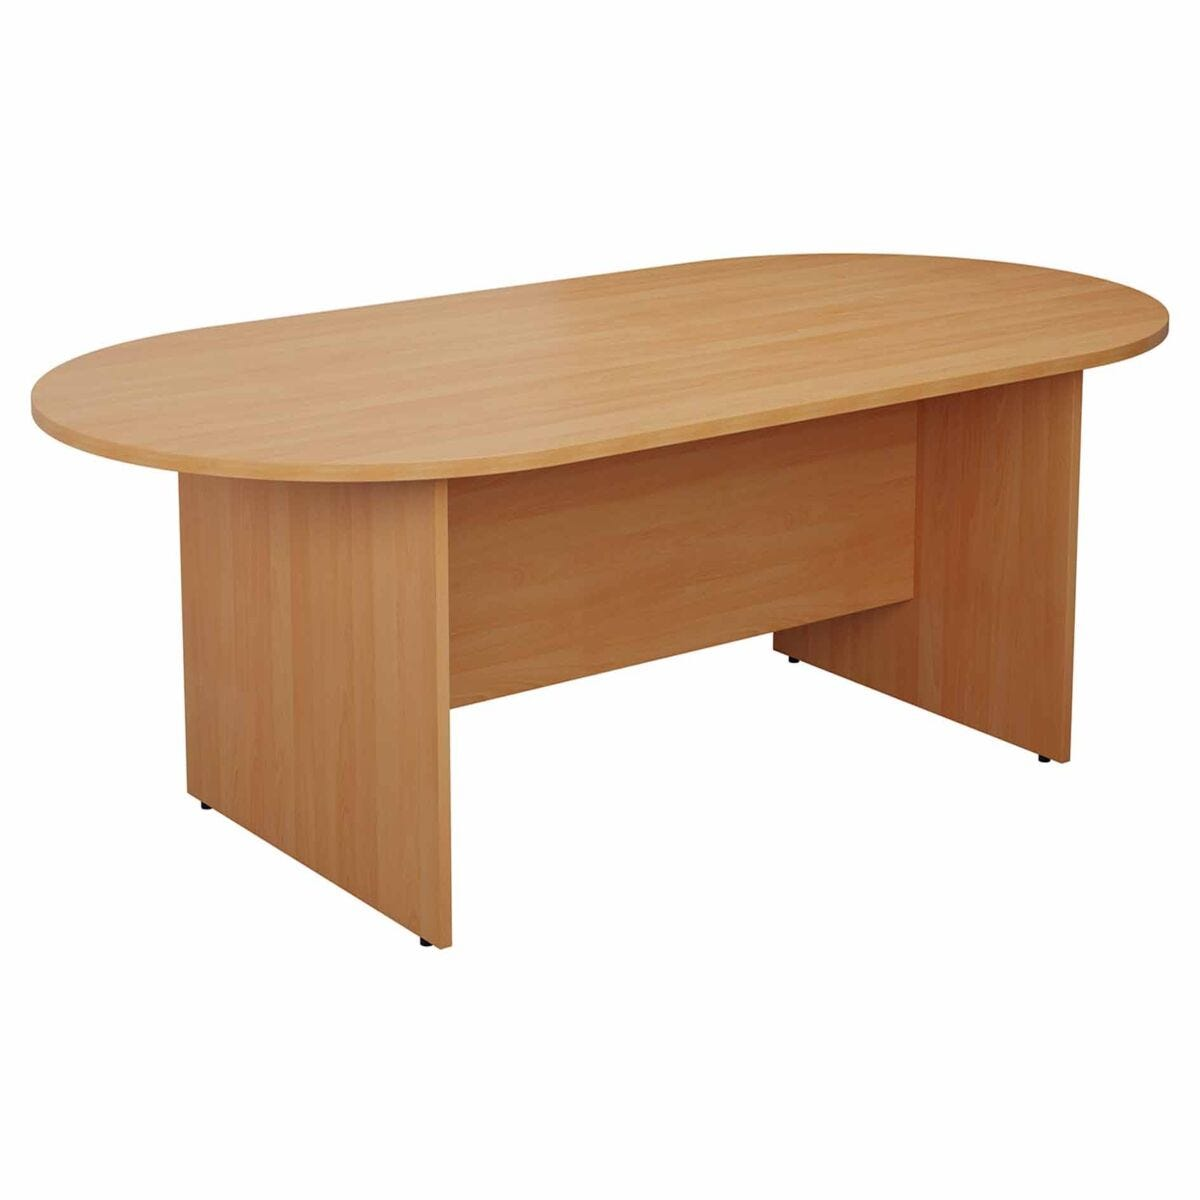 TC Office Long D-End Boardroom Table 1800mm